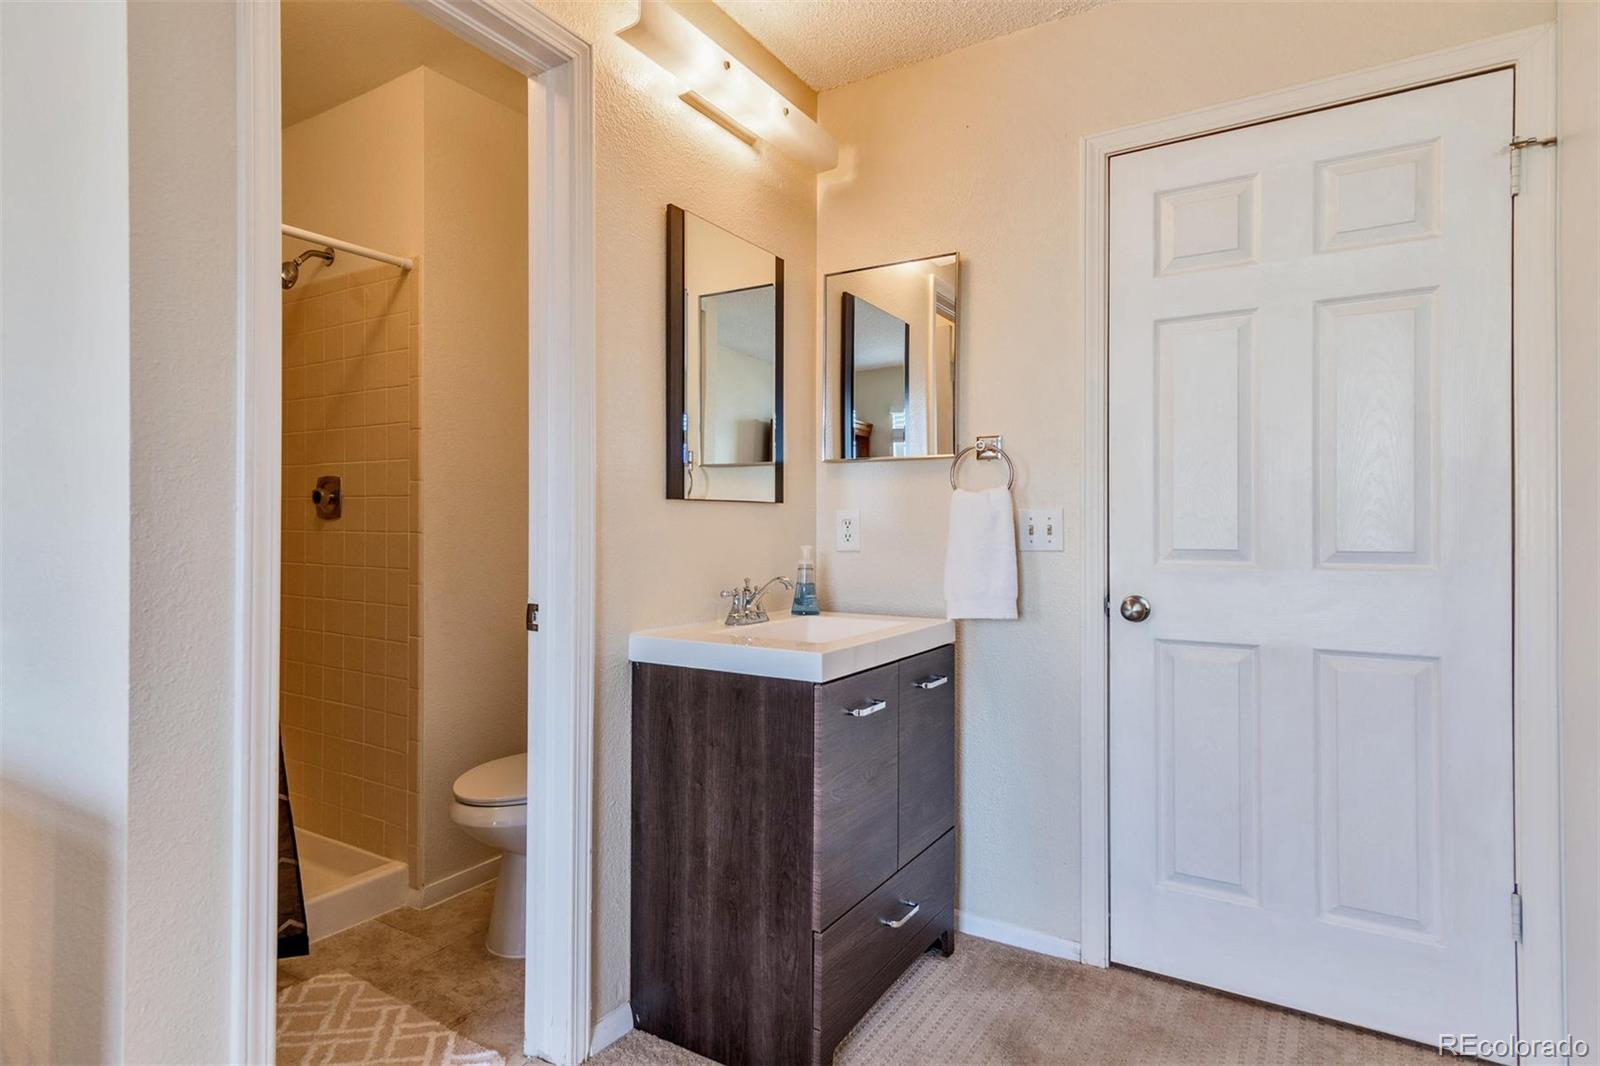 MLS# 6379353 - 20 - 8846 W Dartmouth Place, Lakewood, CO 80227